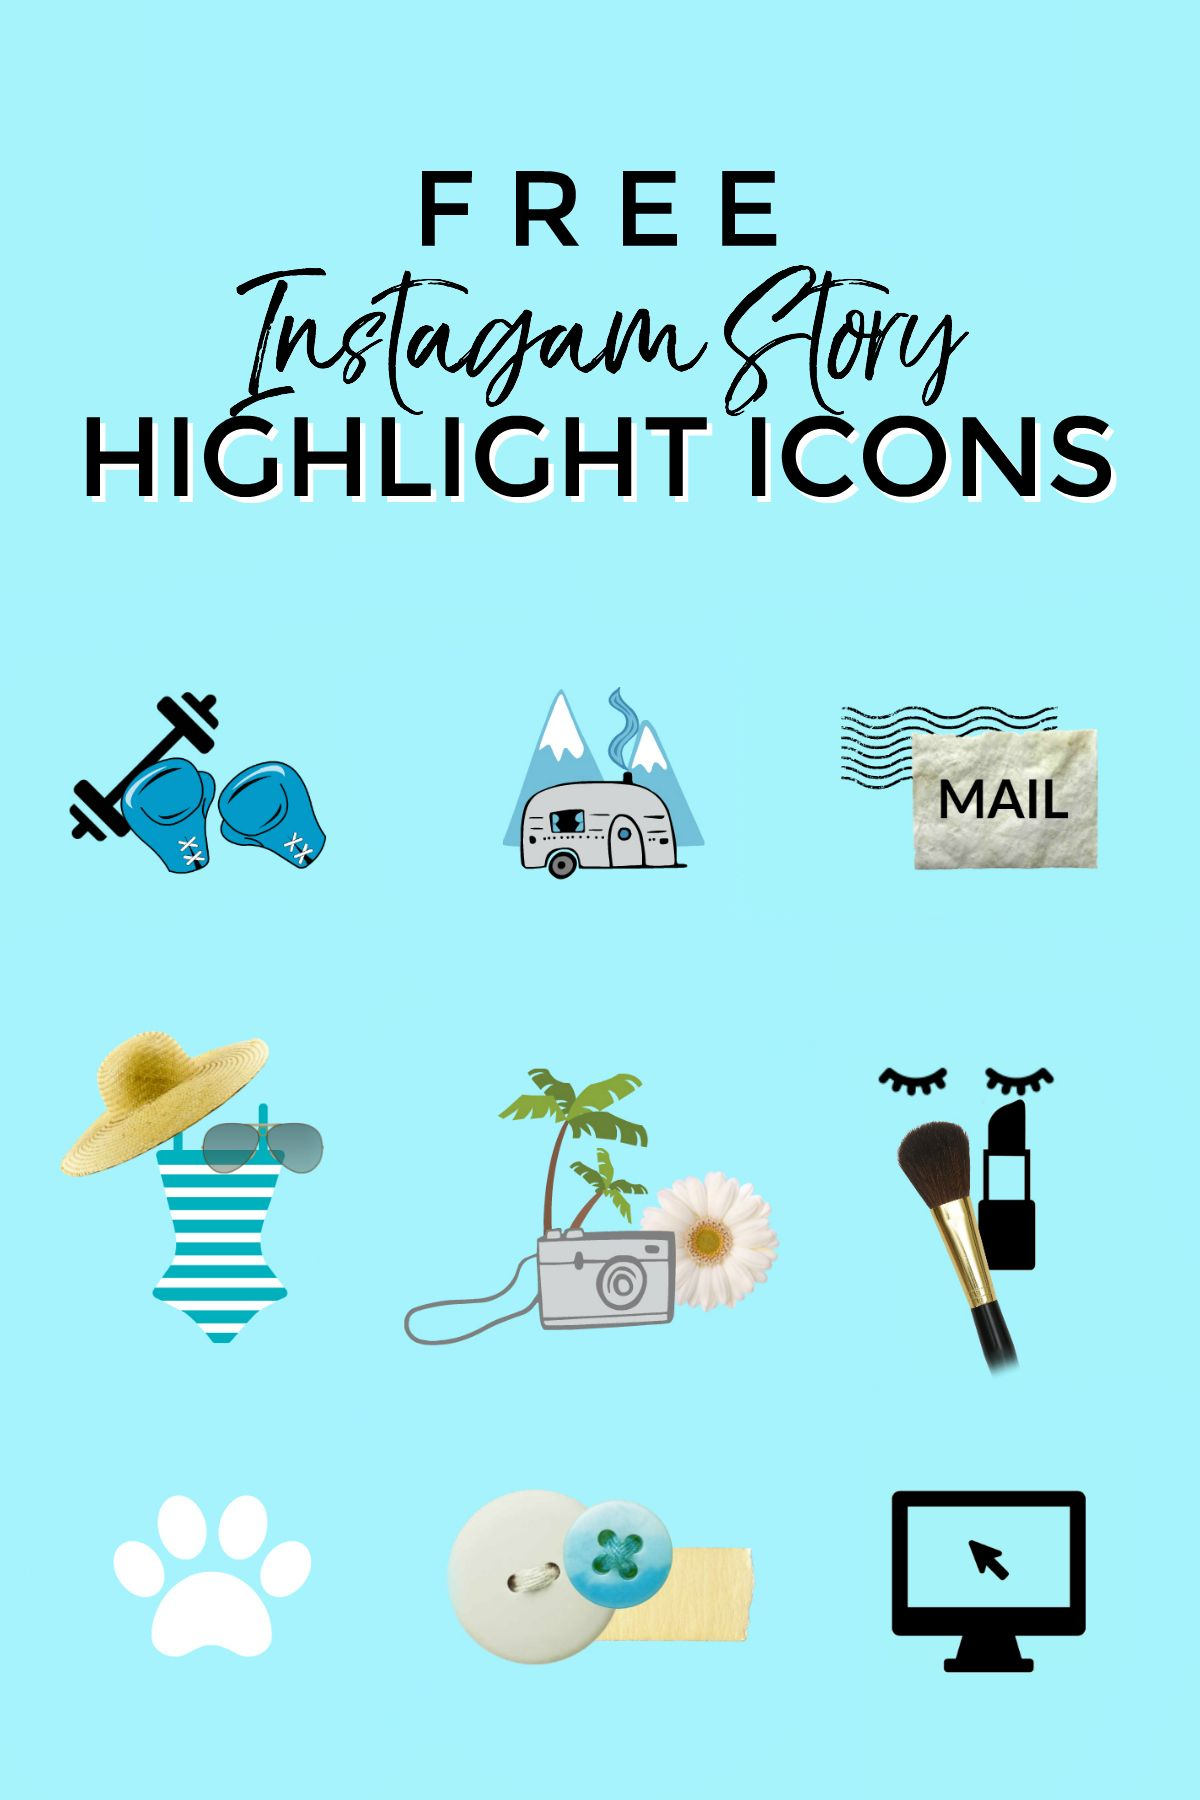 instagram story highlight icons tutorial  free download rose clipart outline rose clip art for headstones